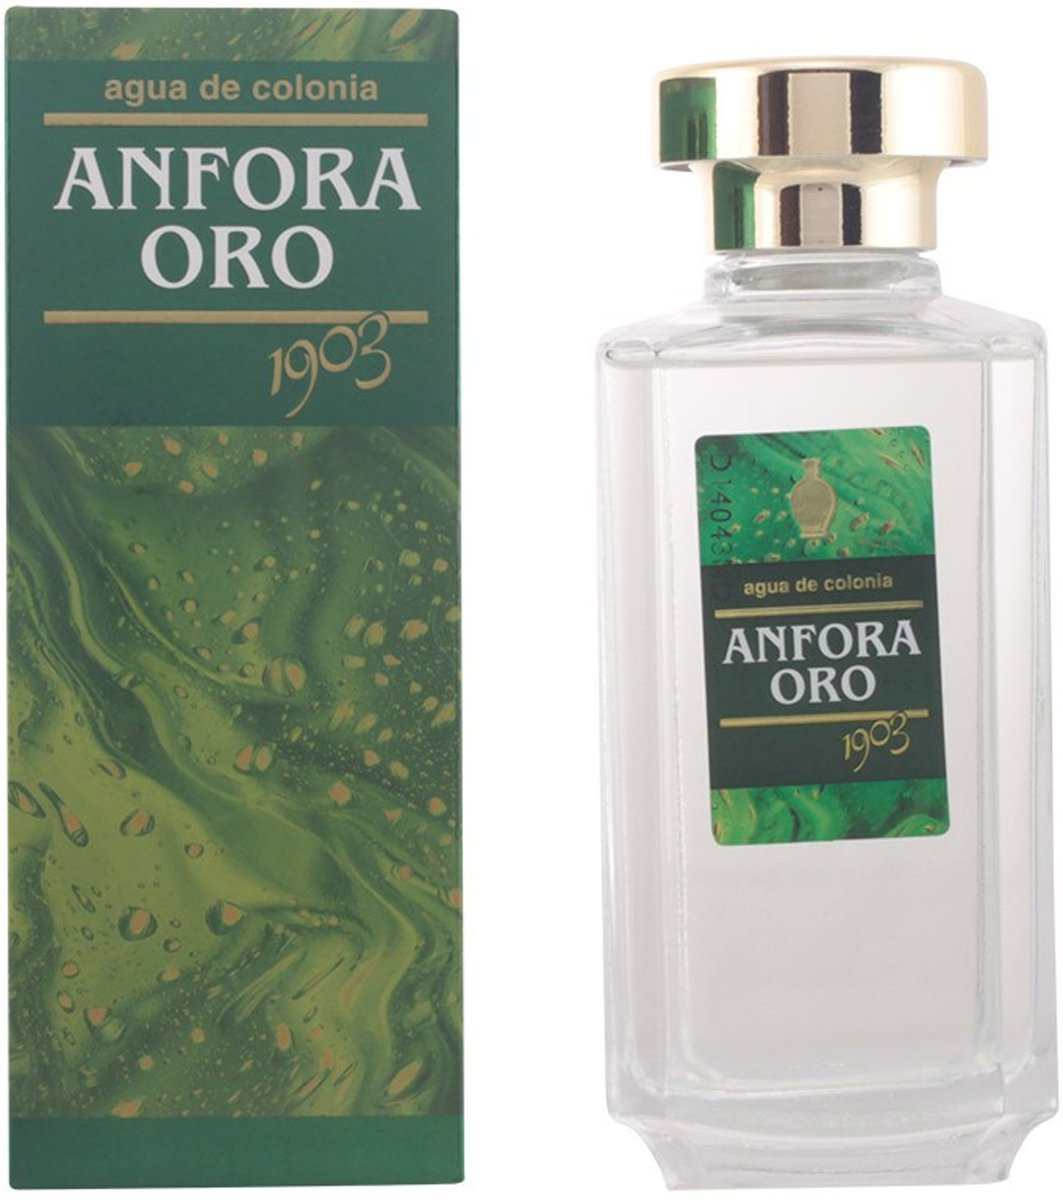 MULTI BUNDEL 2 stuks - Instituto Espanol - ANFORA ORO - eau de cologne - flacon 400 ml